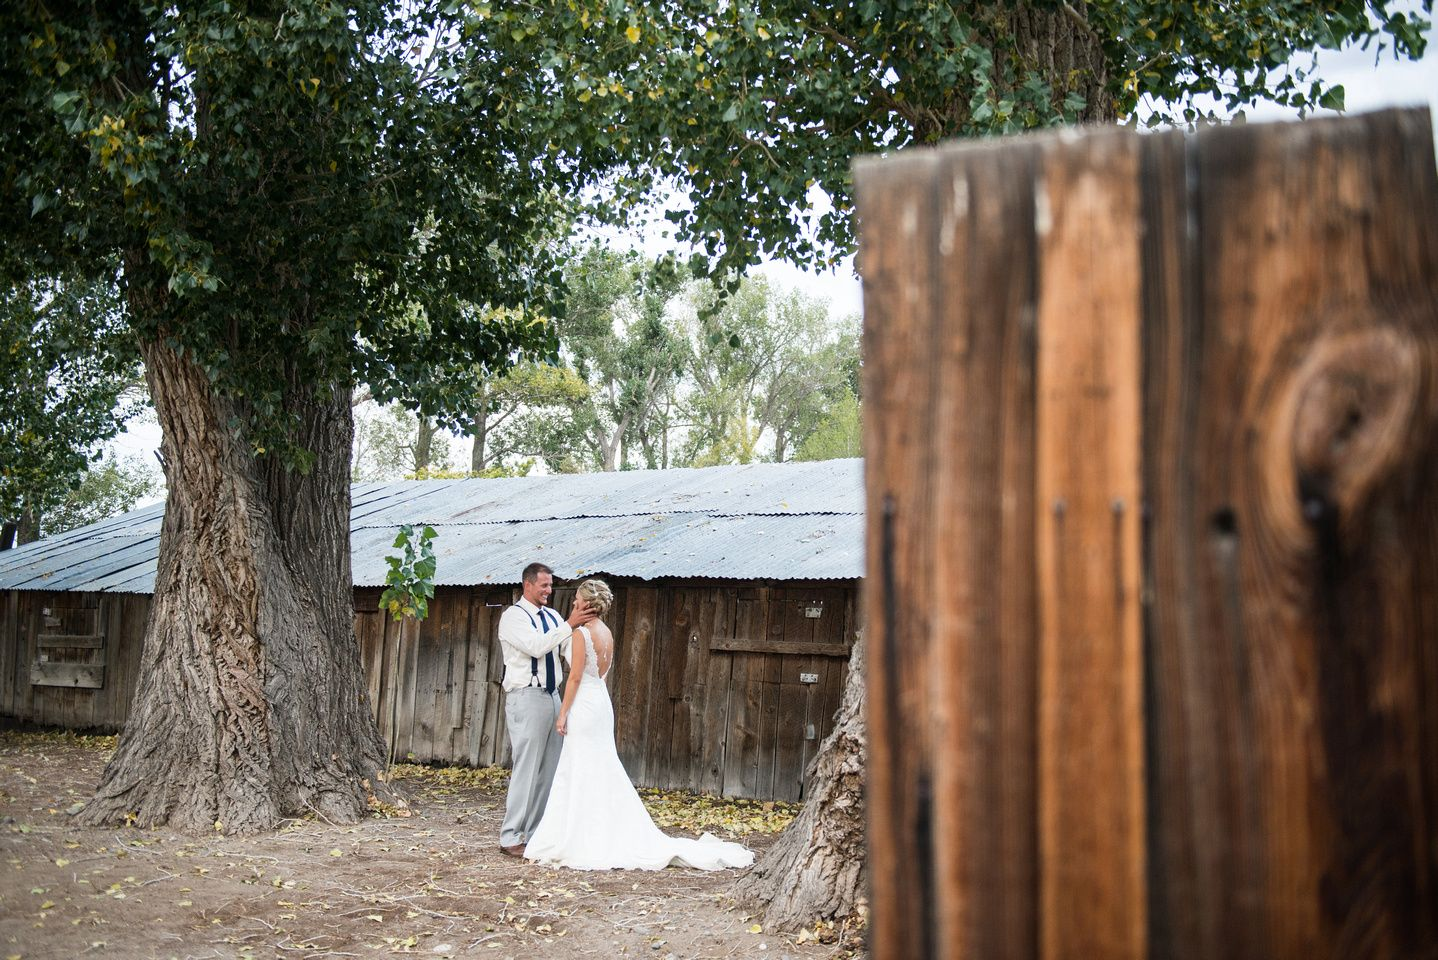 Quiet time- Felicia Events - Wedding Planning http://www.FeliciaEvents.com    Photo by Calvin Hobson Photography